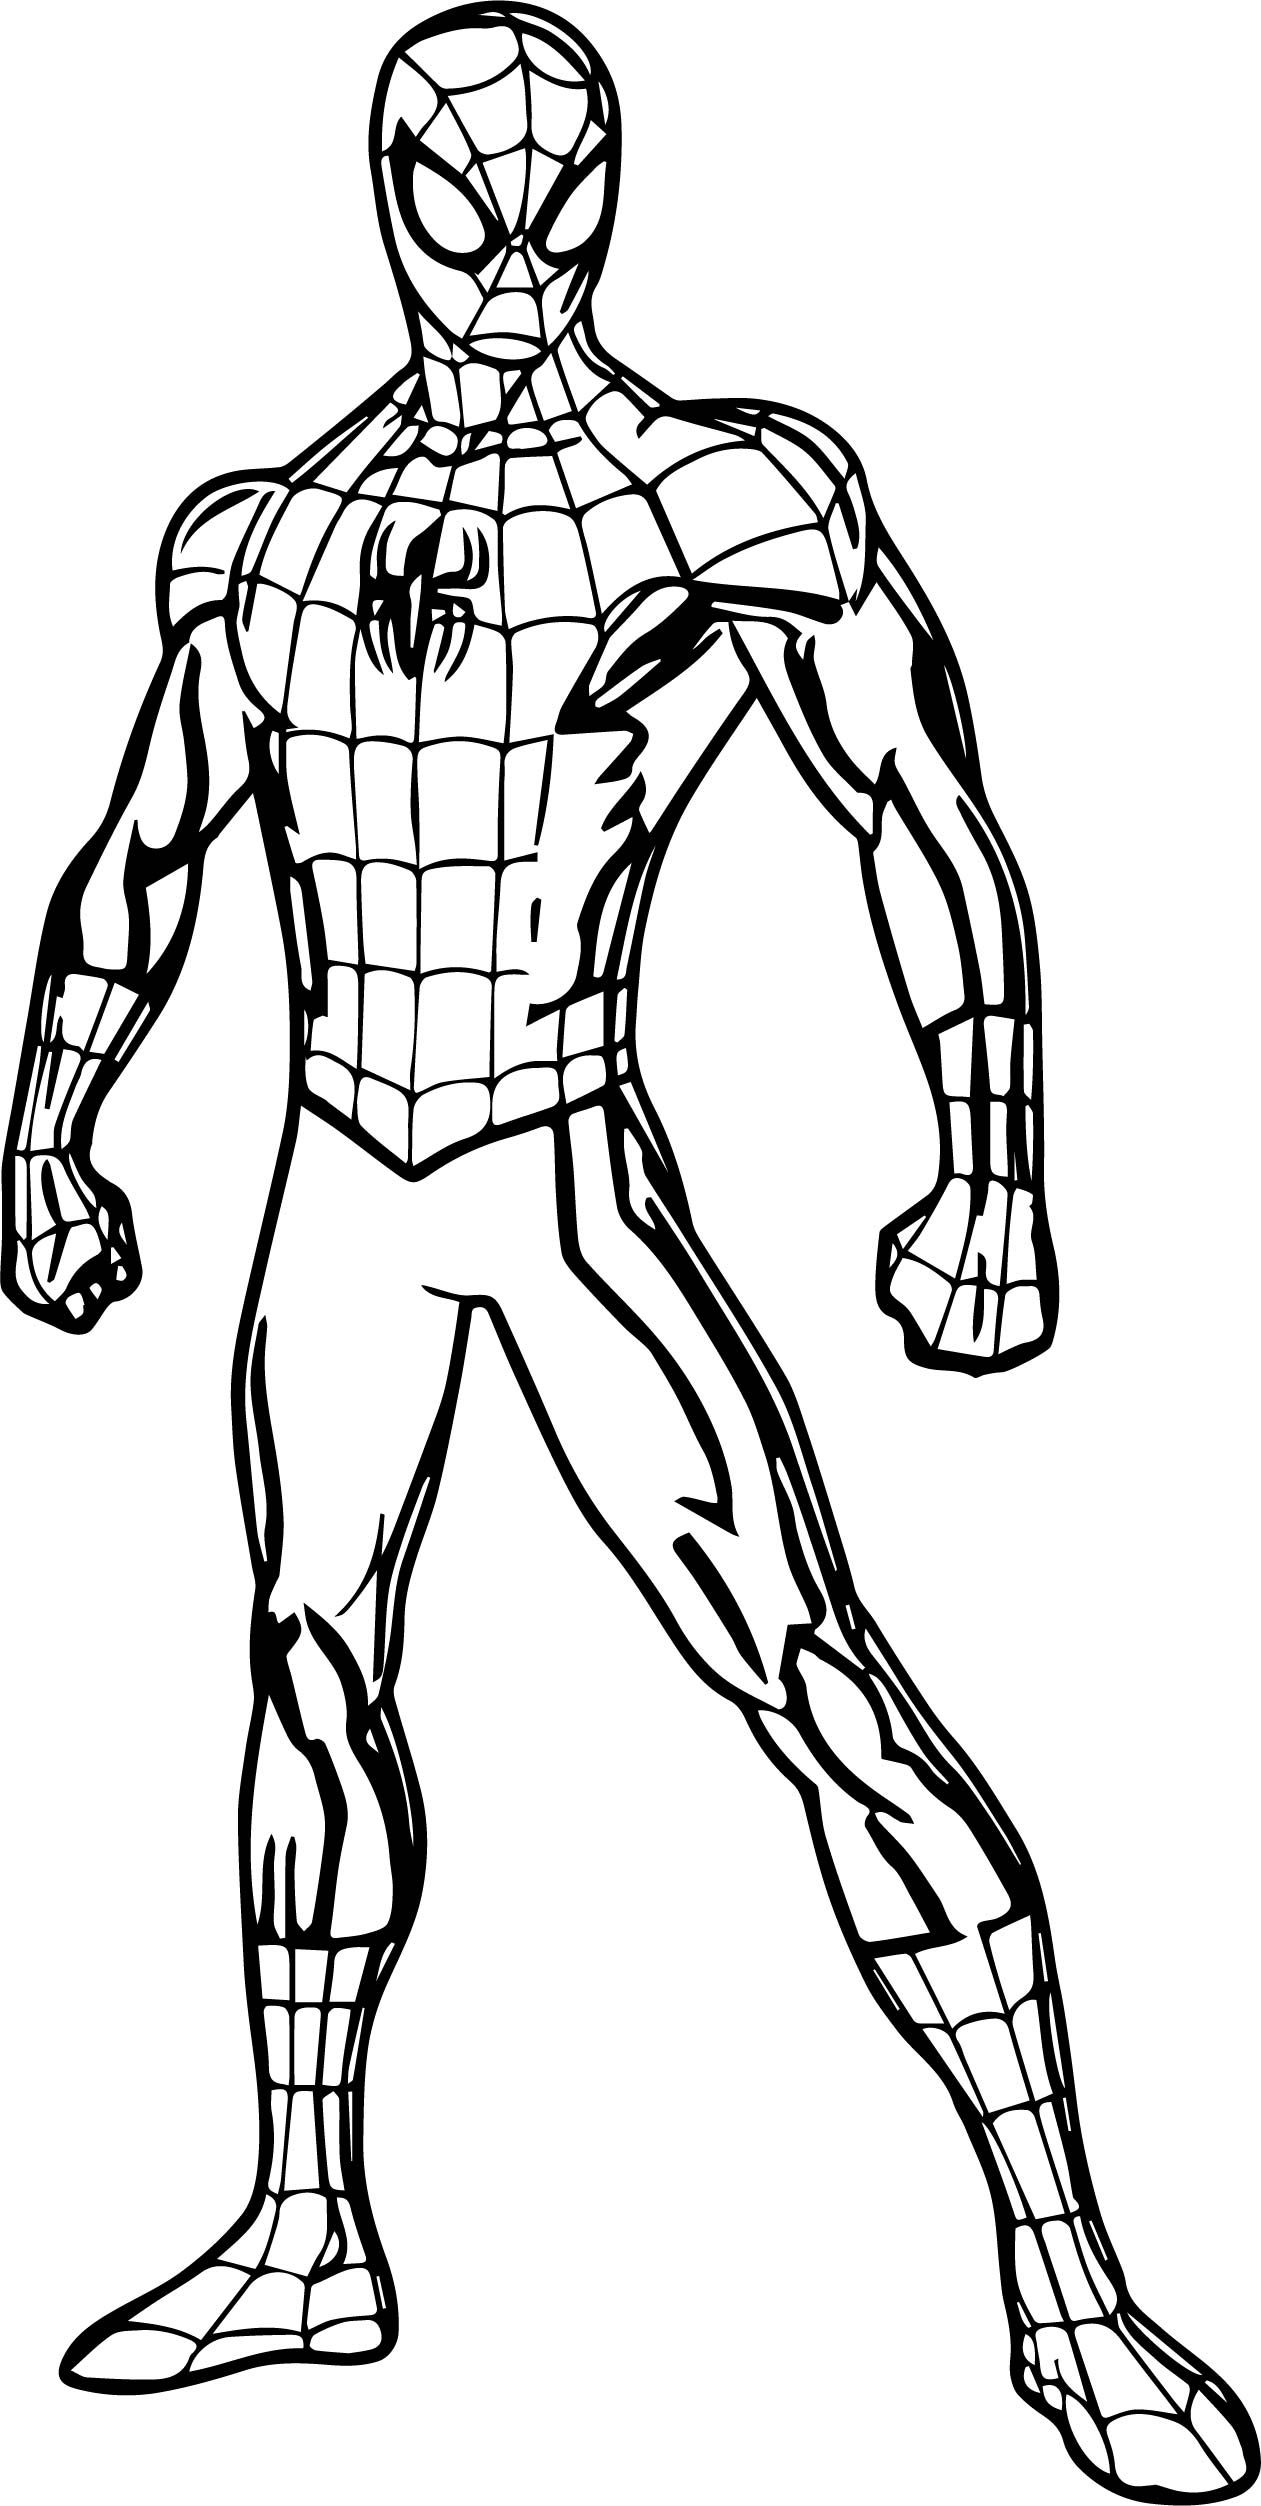 cool Spider Man Pose Coloring Page | Superhero coloring ...